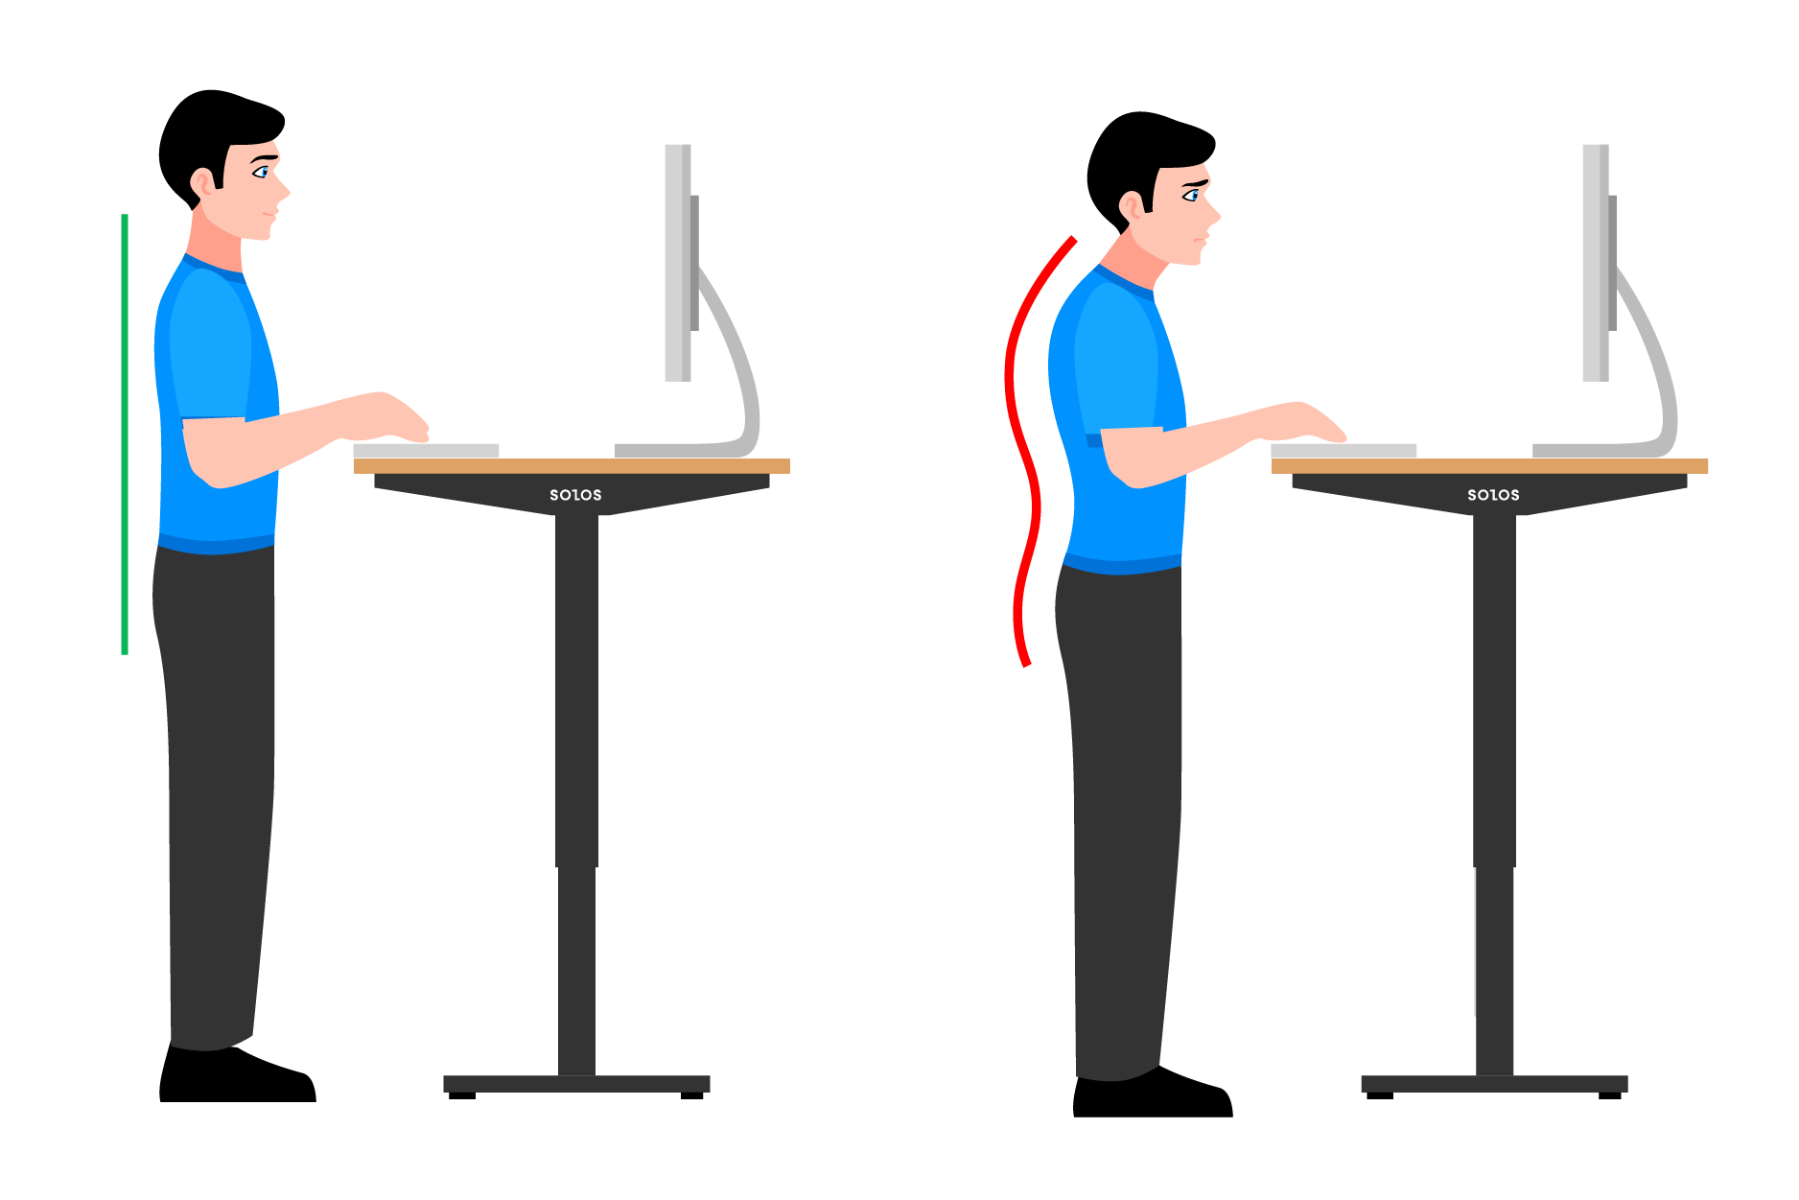 One of the biggest complaints of office workers after sitting at their desks for a long time is bad posture.